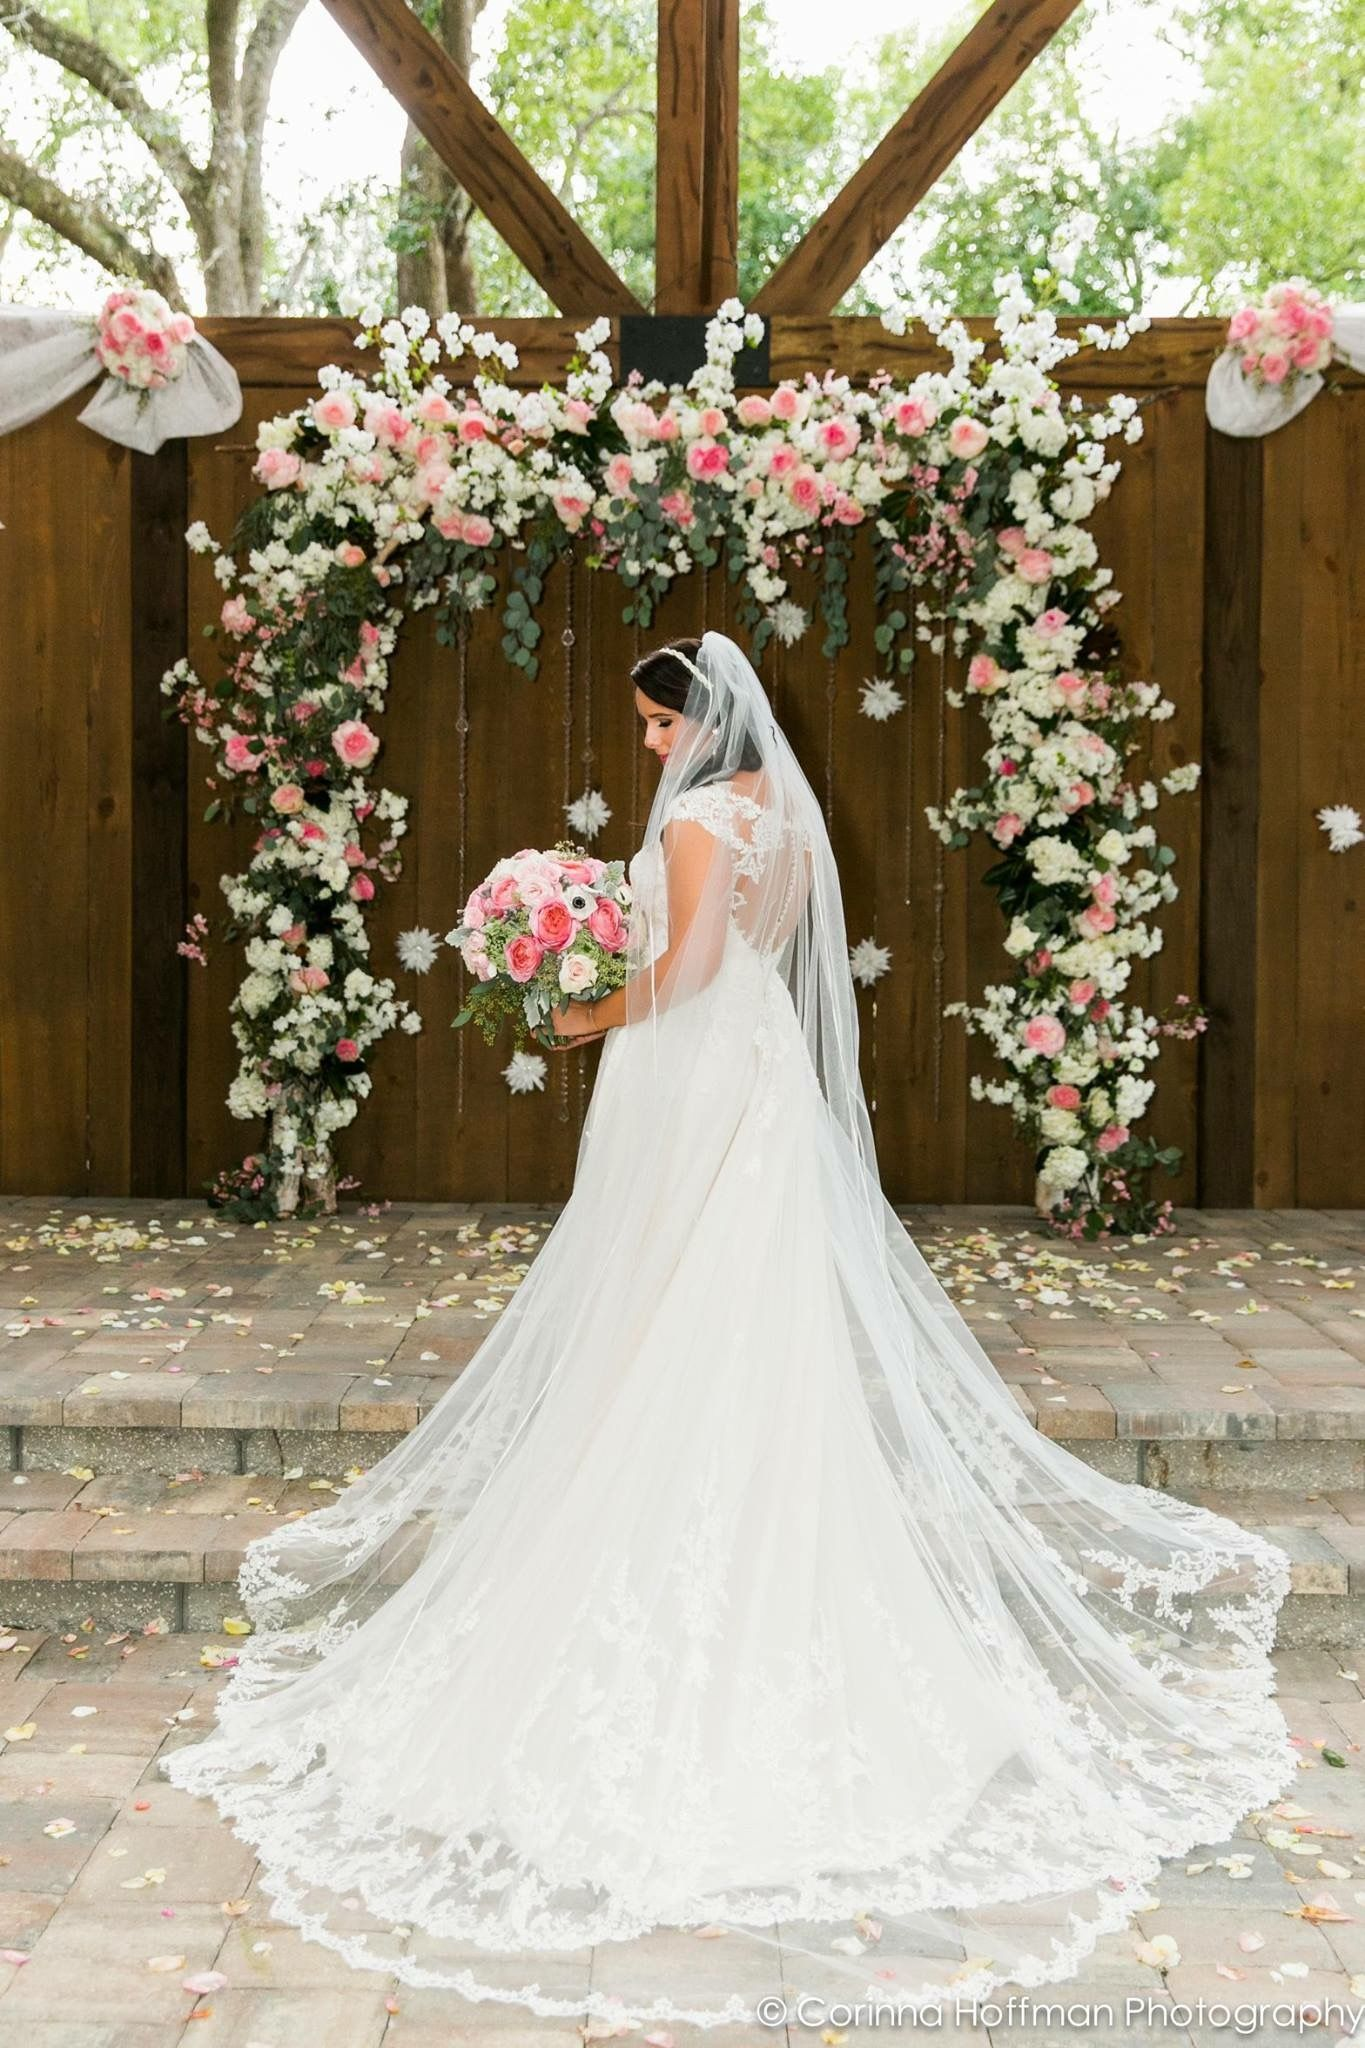 Bridal gown wedding dress elegant and classy with long